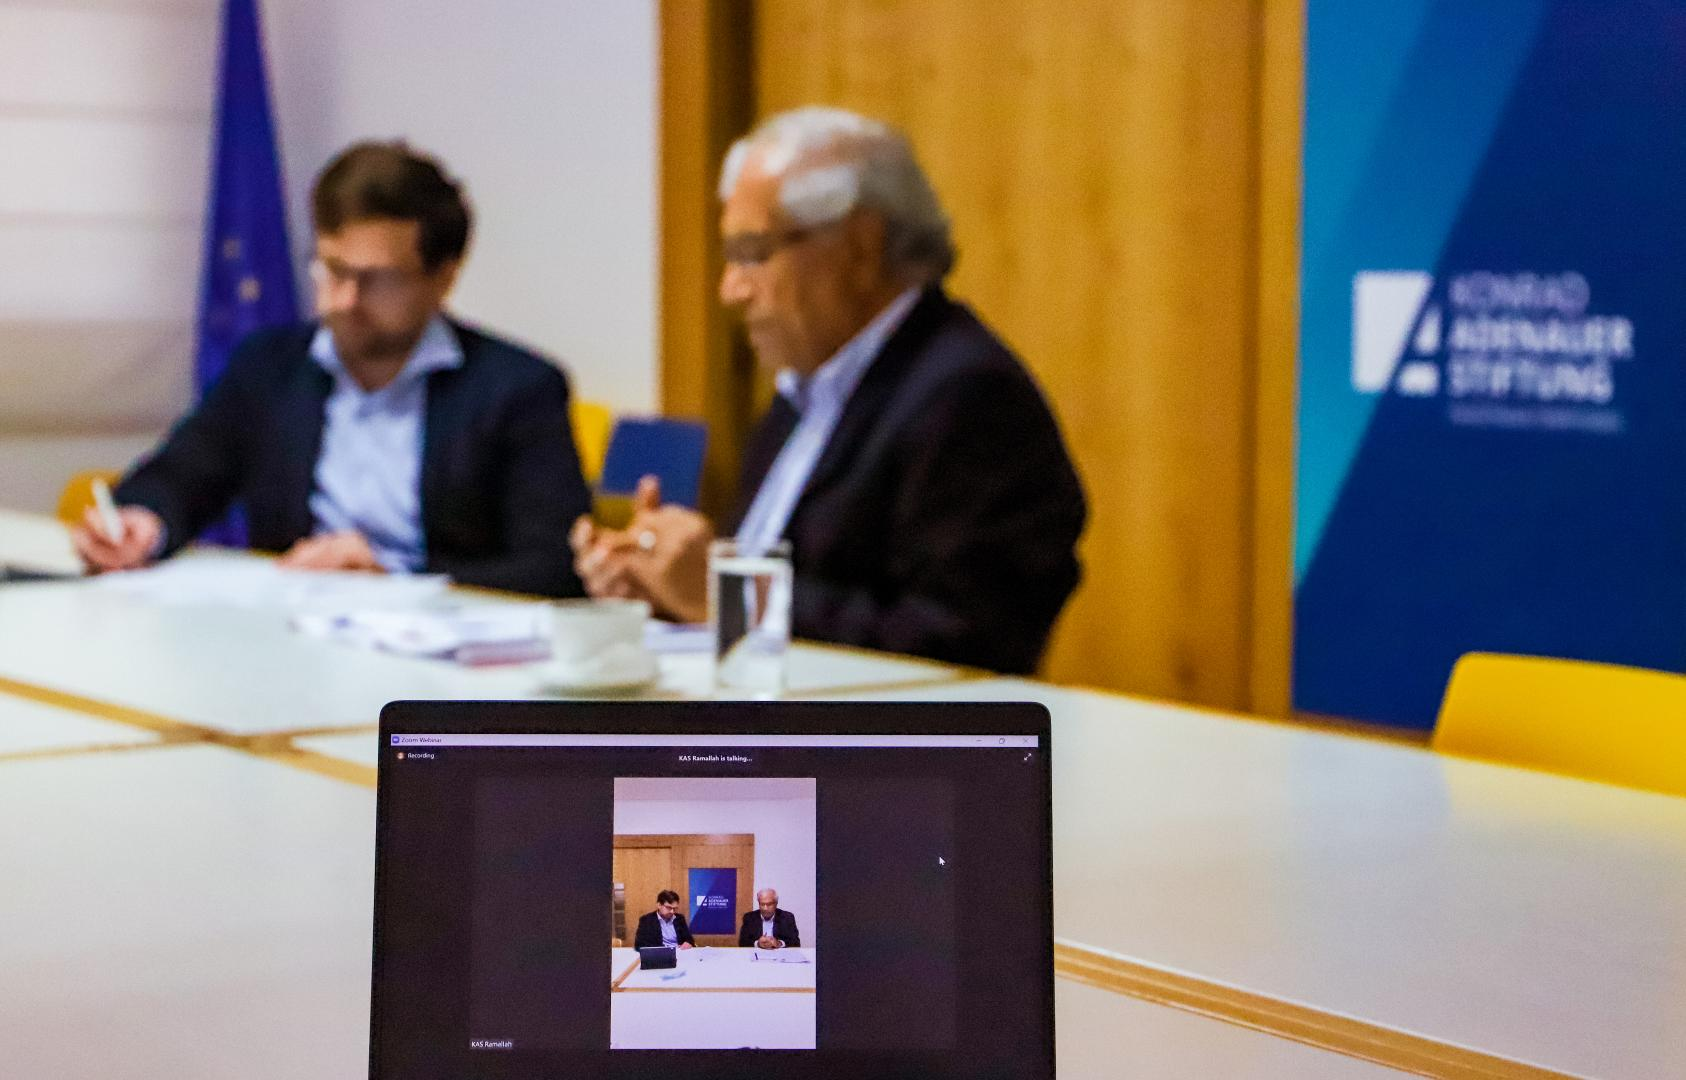 KAS/PSR virtual conference to discuss findings of poll No.78